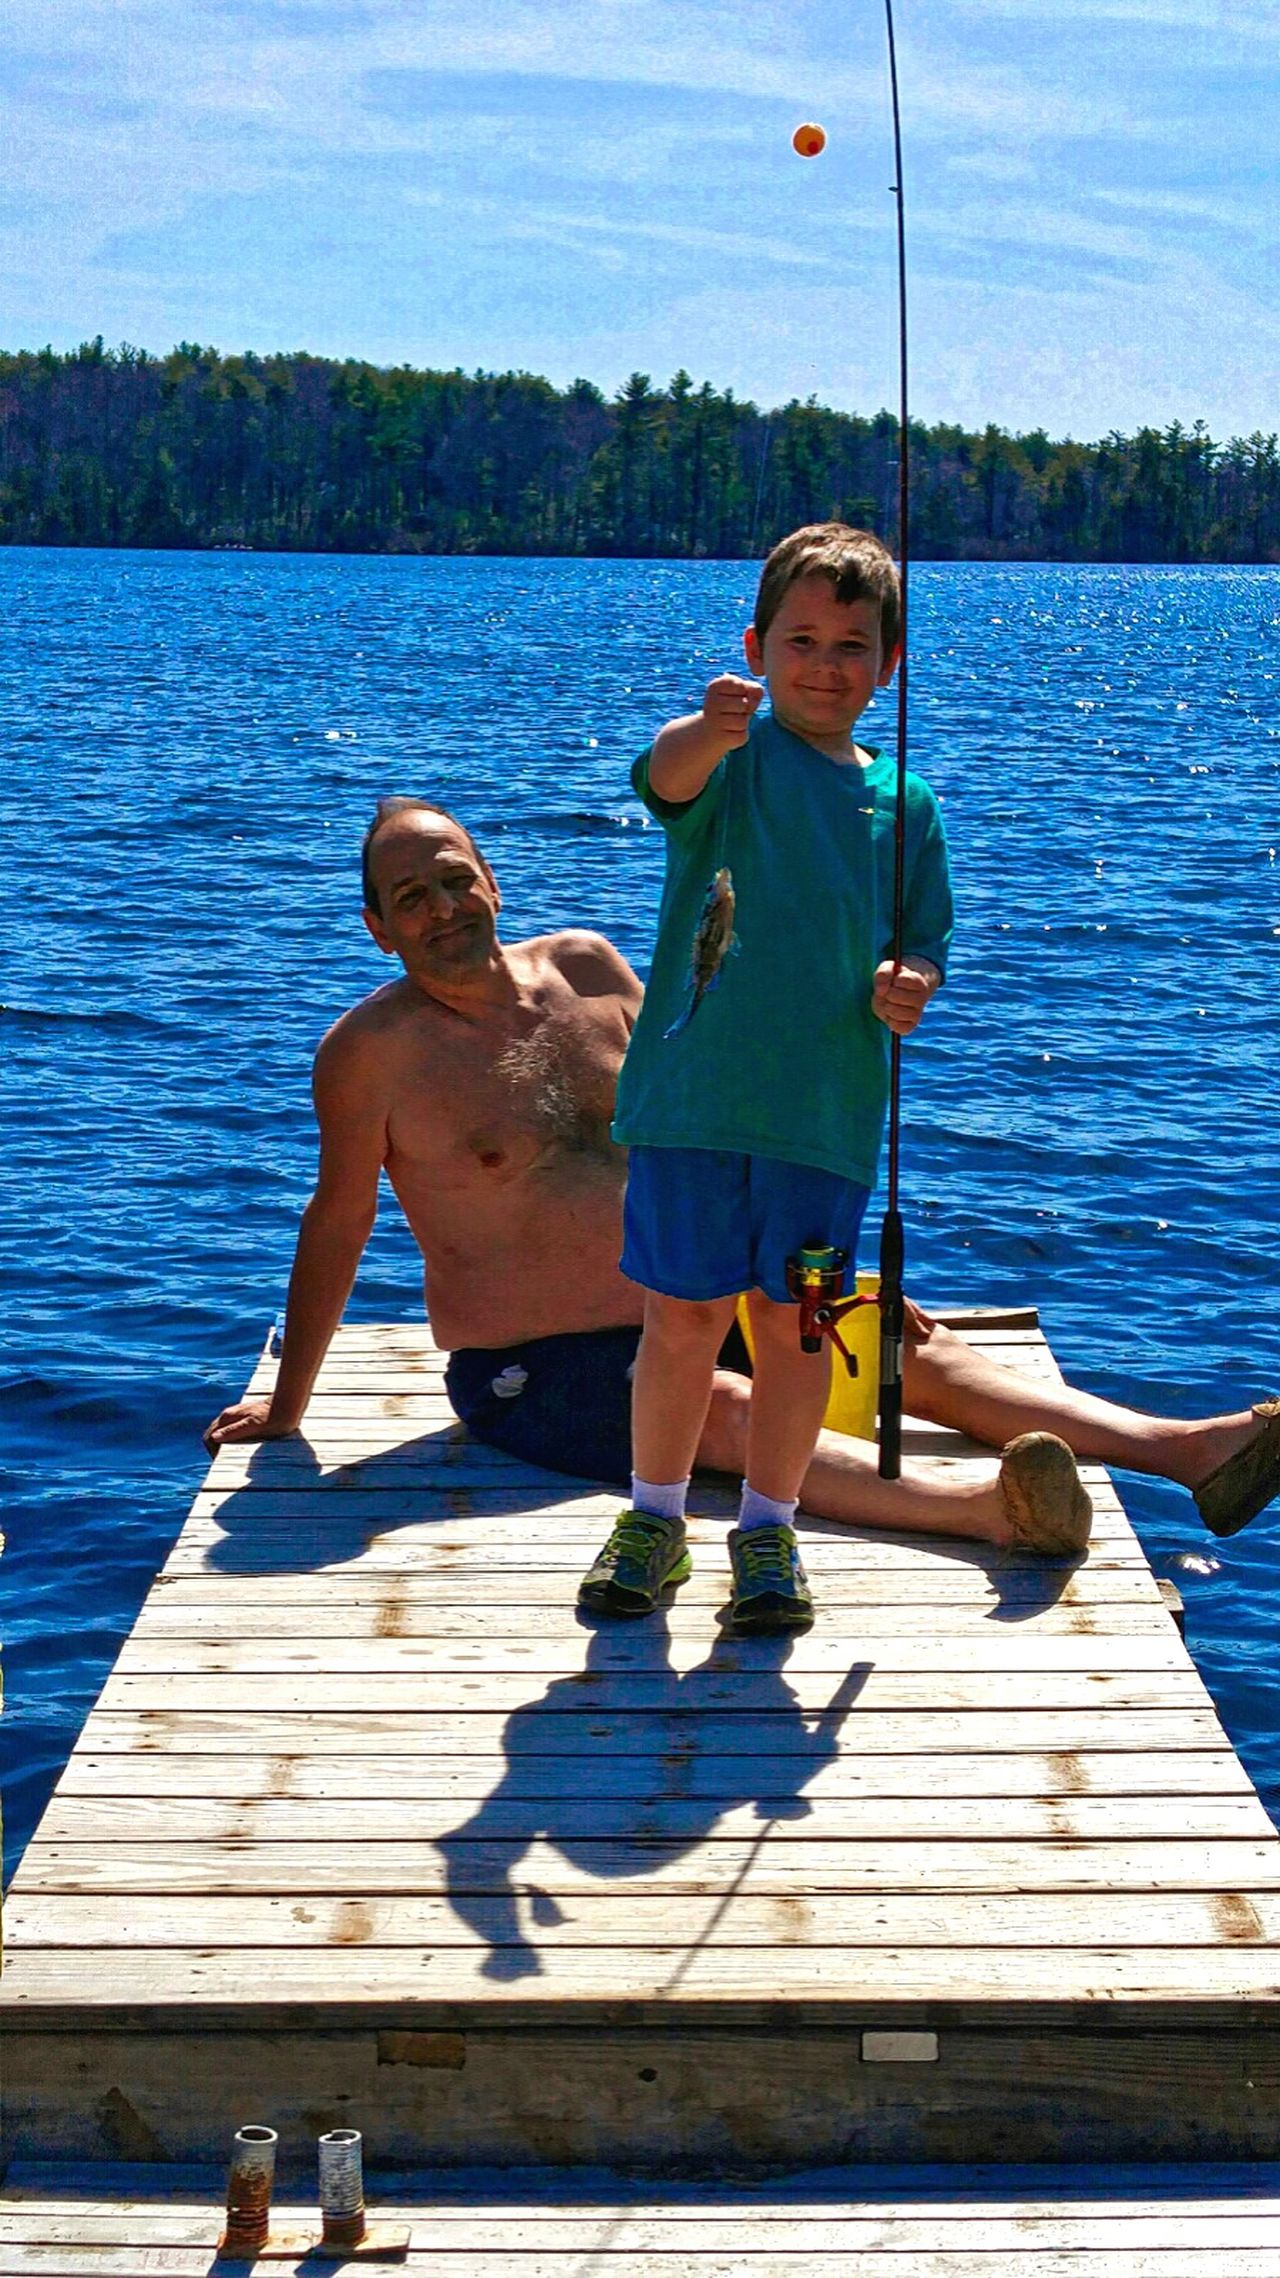 L.Adkins Photography Massachusetts New England Summer Feel The Journey Eyemcaptured Eyem Community EyeEm Gallery Fresh On Eyeem  Eyemmarket My Style ❤ United States Massachussets Lakelife Little Boy Summertime Little Boy Caught First Fish Little Boy Fishing With Grampa Eyemphotography Original Experiences